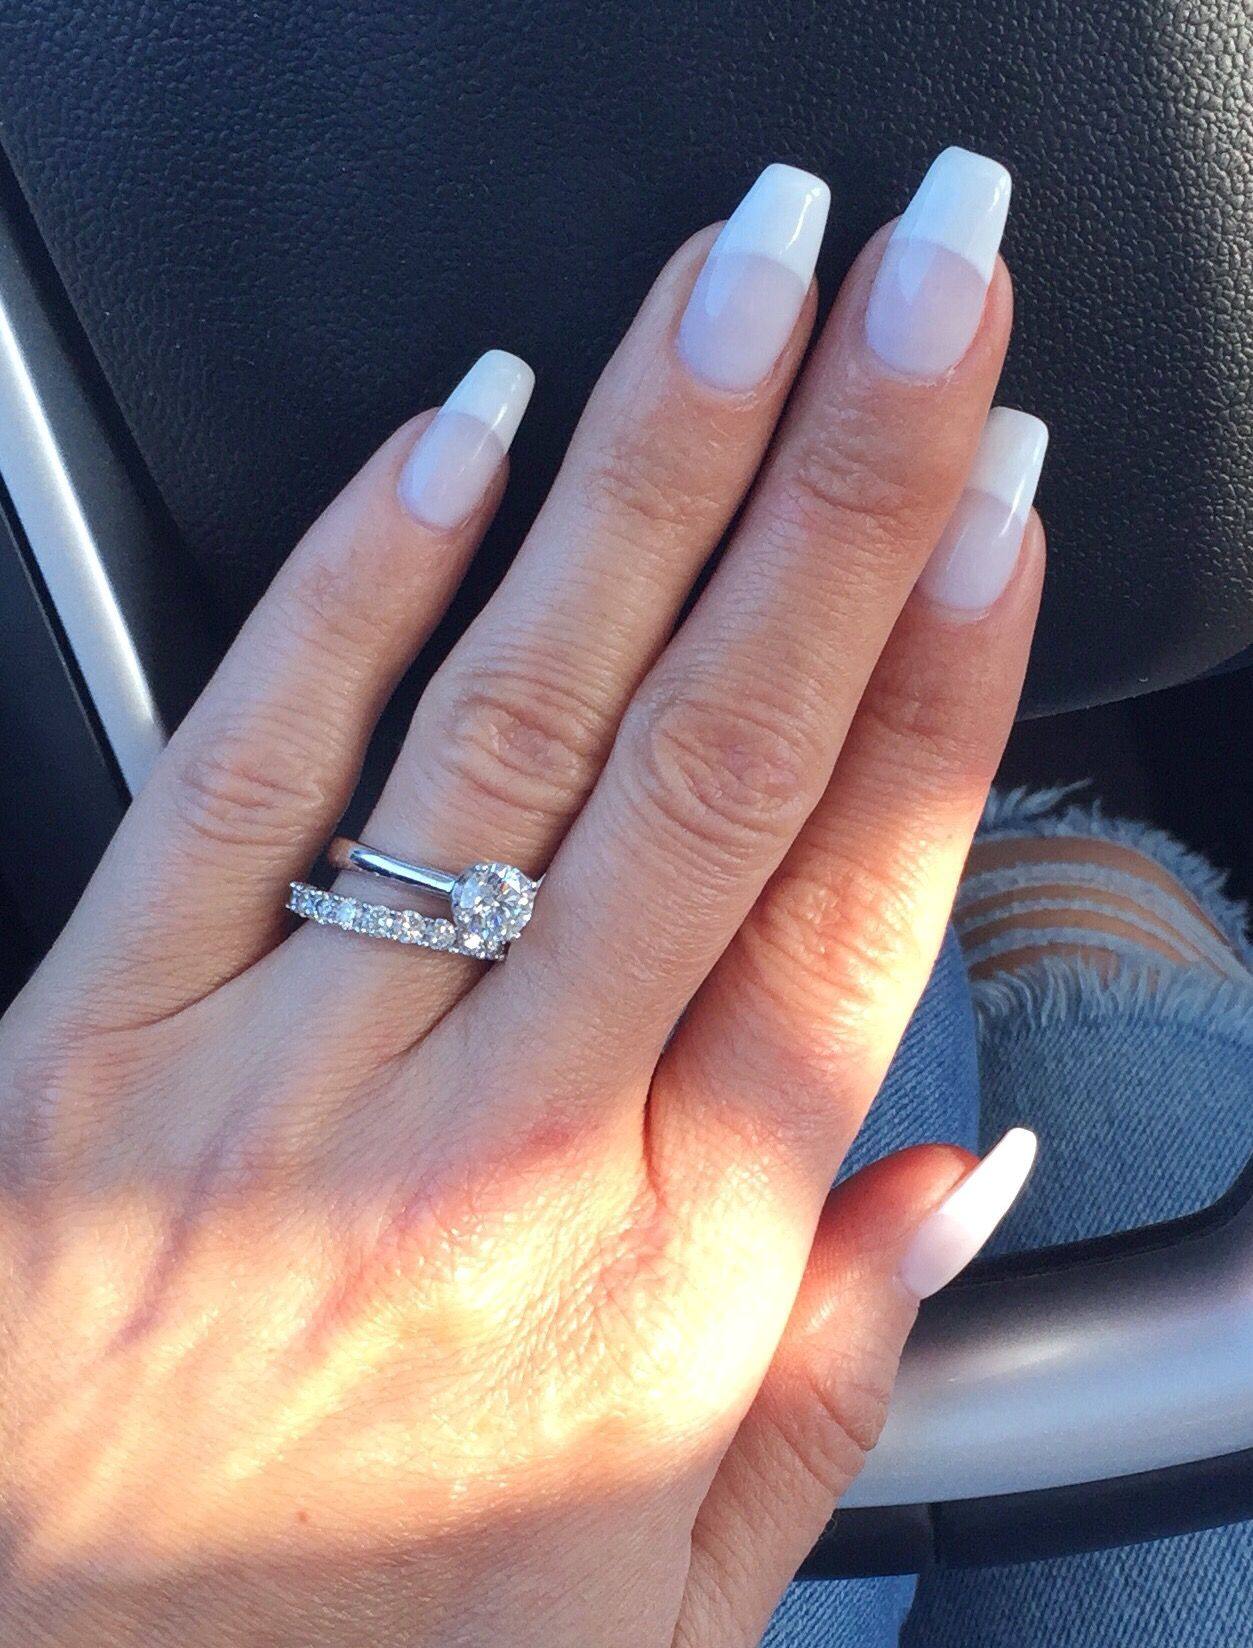 OPI\'s funny bunny #692 gel polish with white tips | Bling ...